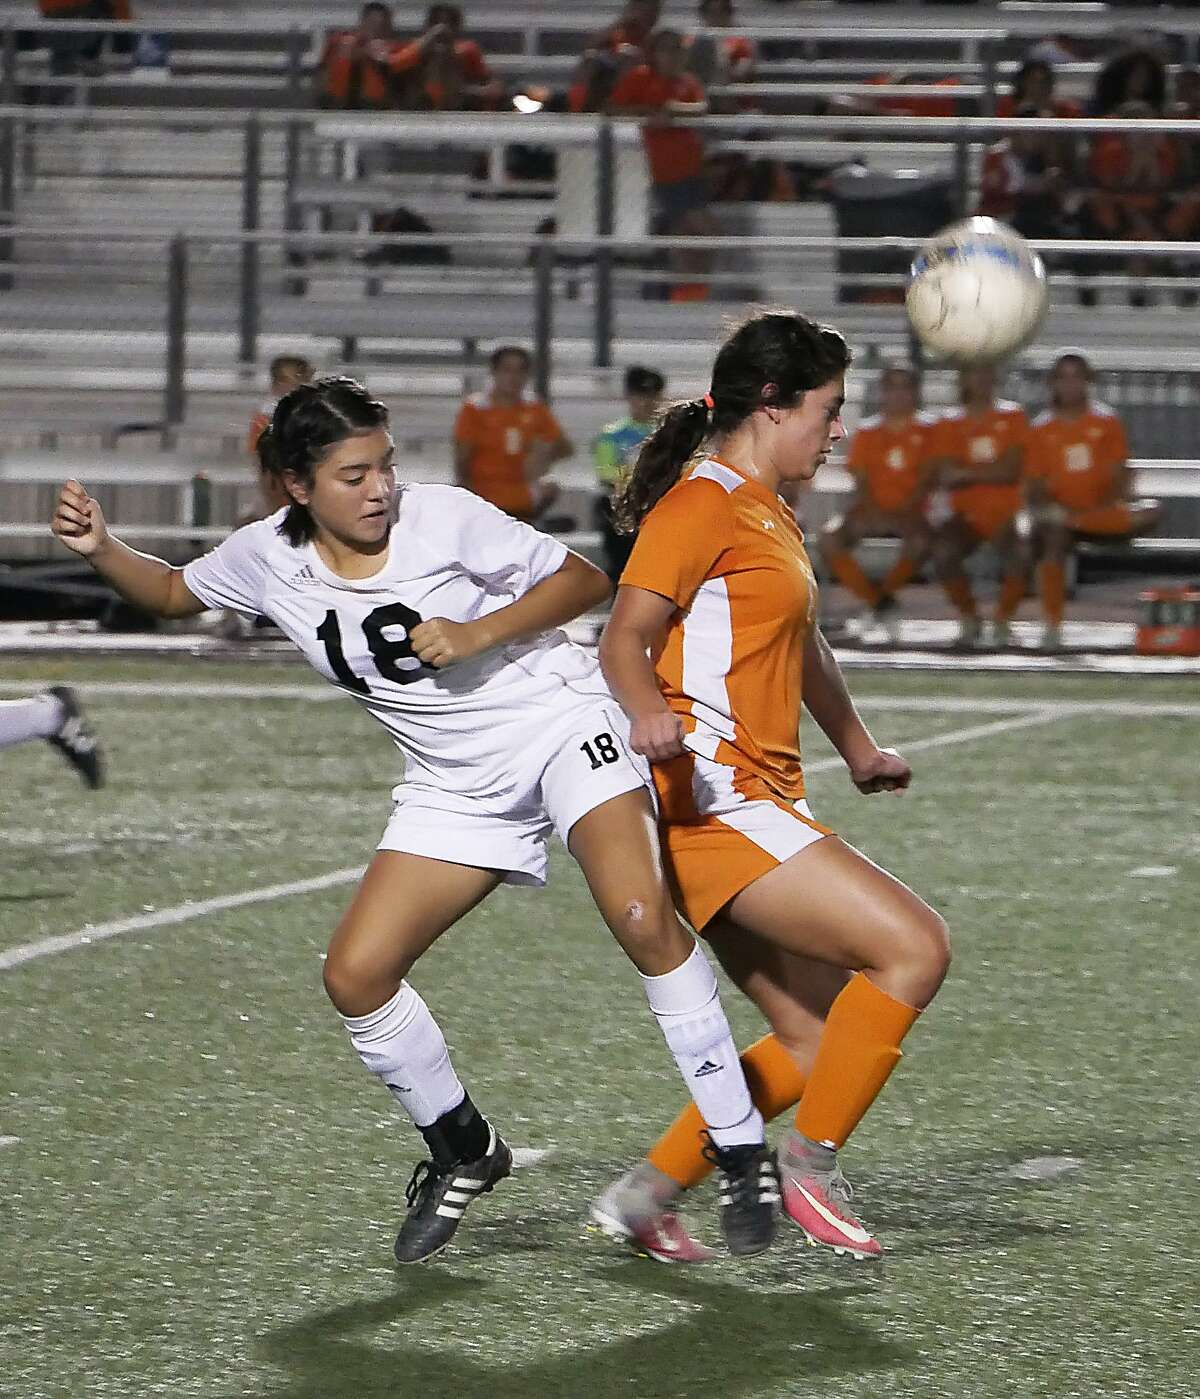 First-place United (19-3-3, 12-2 District 29-6A) and fourth-place United South (16-2-10, 7-2-5) will play La Joya Juarez-Lincoln and McAllen, respectively, in the first round of the playoffs.